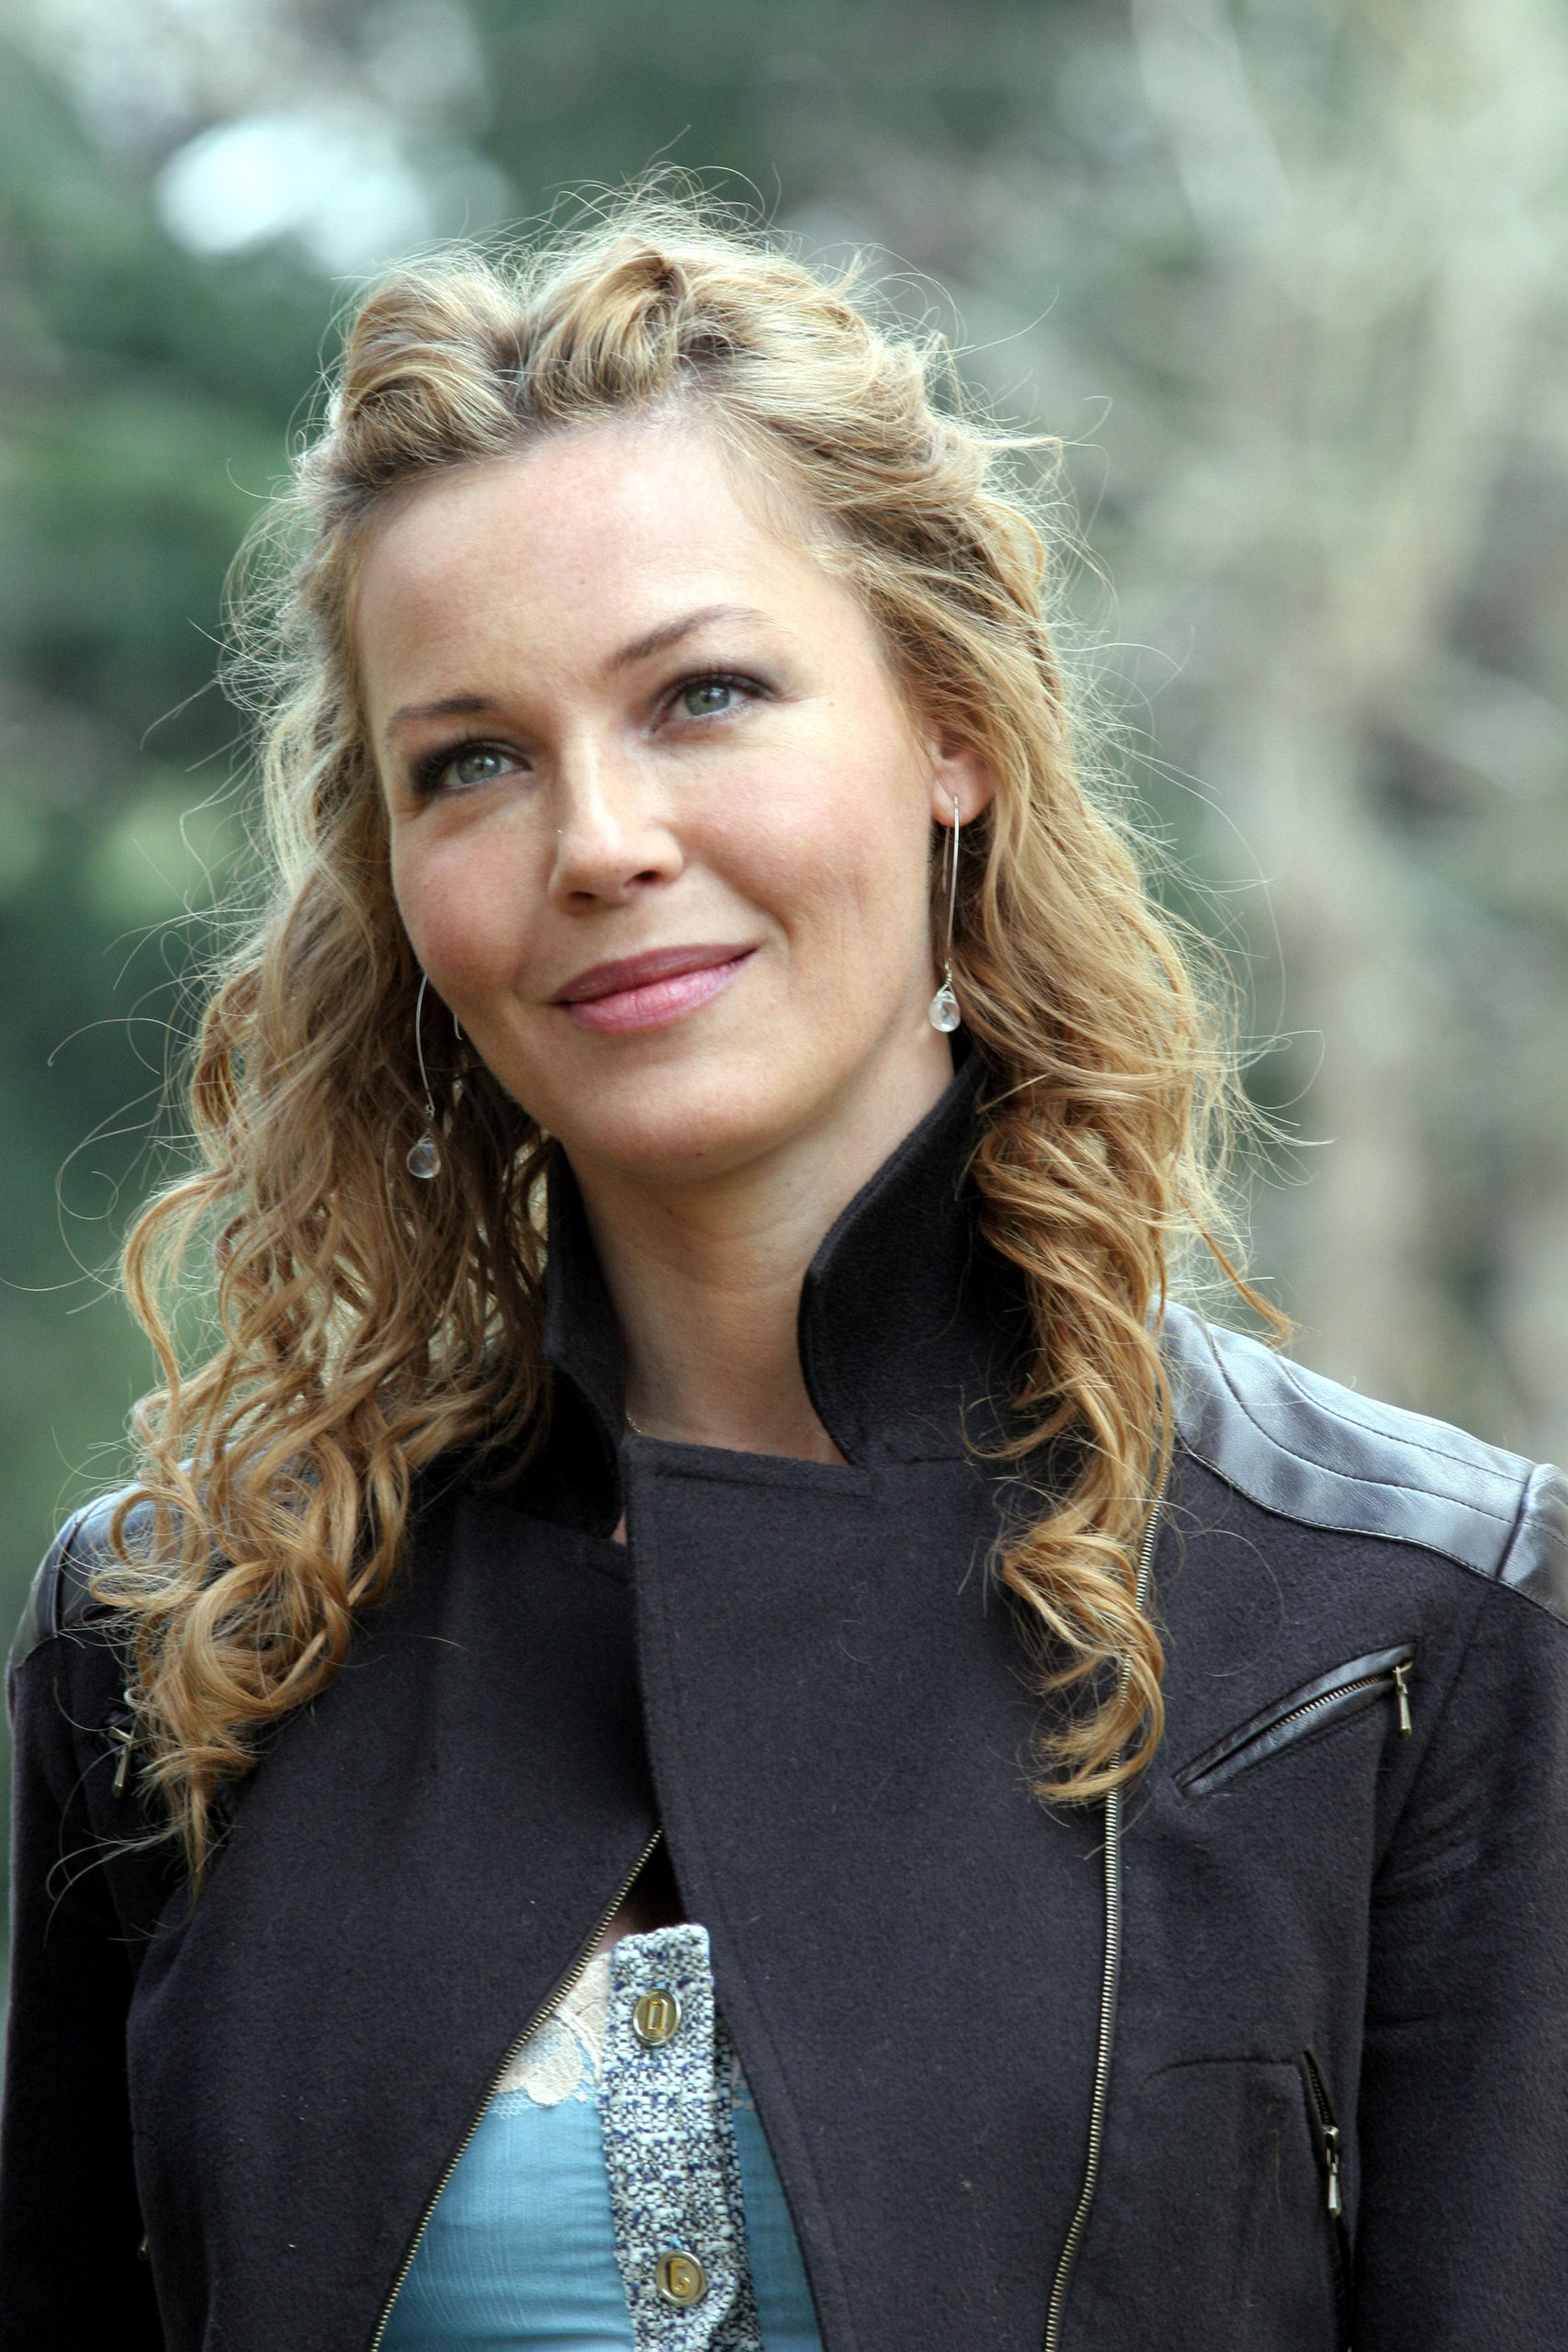 Connie - connie-nielsen Photo - Connie-connie-nielsen-30044704-1707-2560